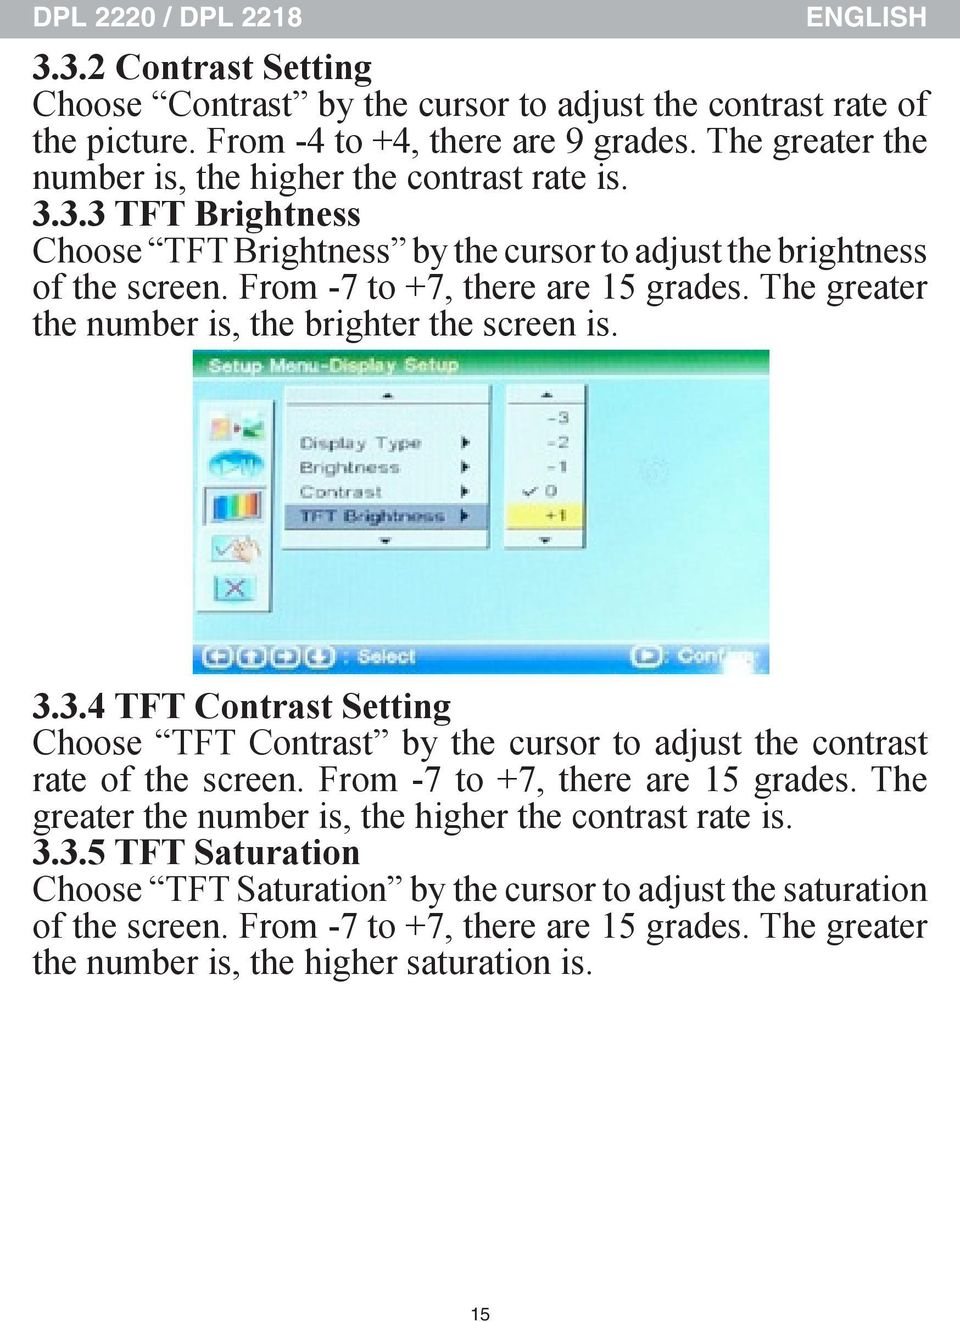 The greater the number is, the brighter the screen is. 3.3.4 TFT Contrast Setting Choose TFT Contrast by the cursor to adjust the contrast rate of the screen. From -7 to +7, there are 15 grades.